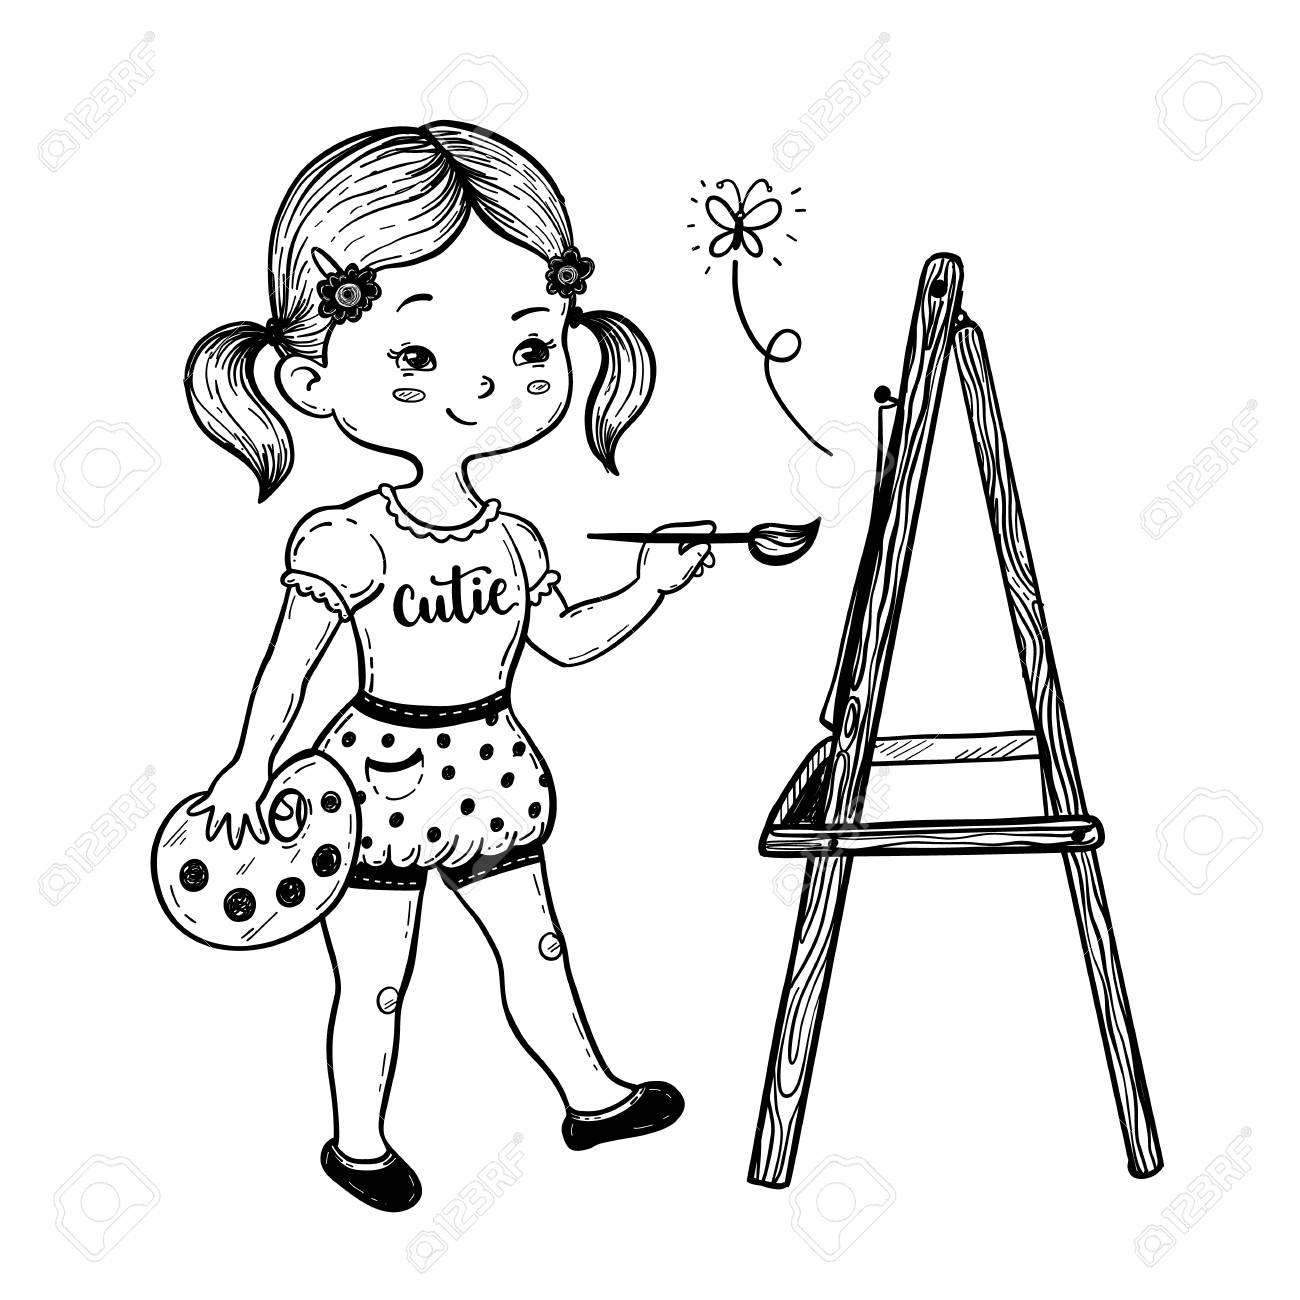 vector illustration of a cute little girl drawing behind an easel